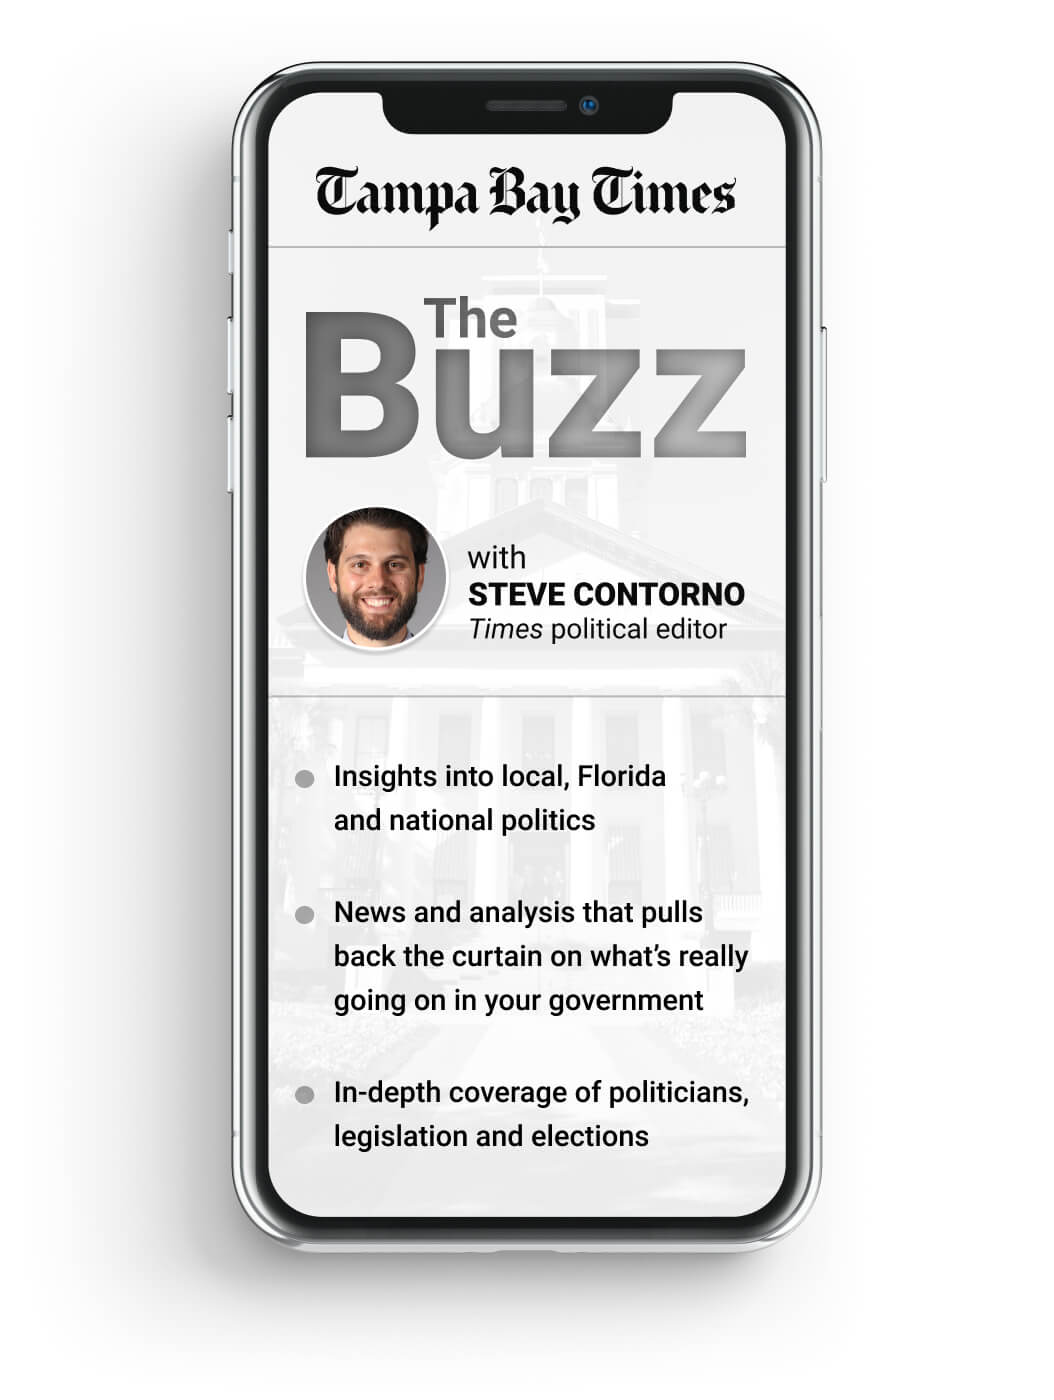 The Tampa Bay Times 'The Buzz with Steve Contorno' newsletter